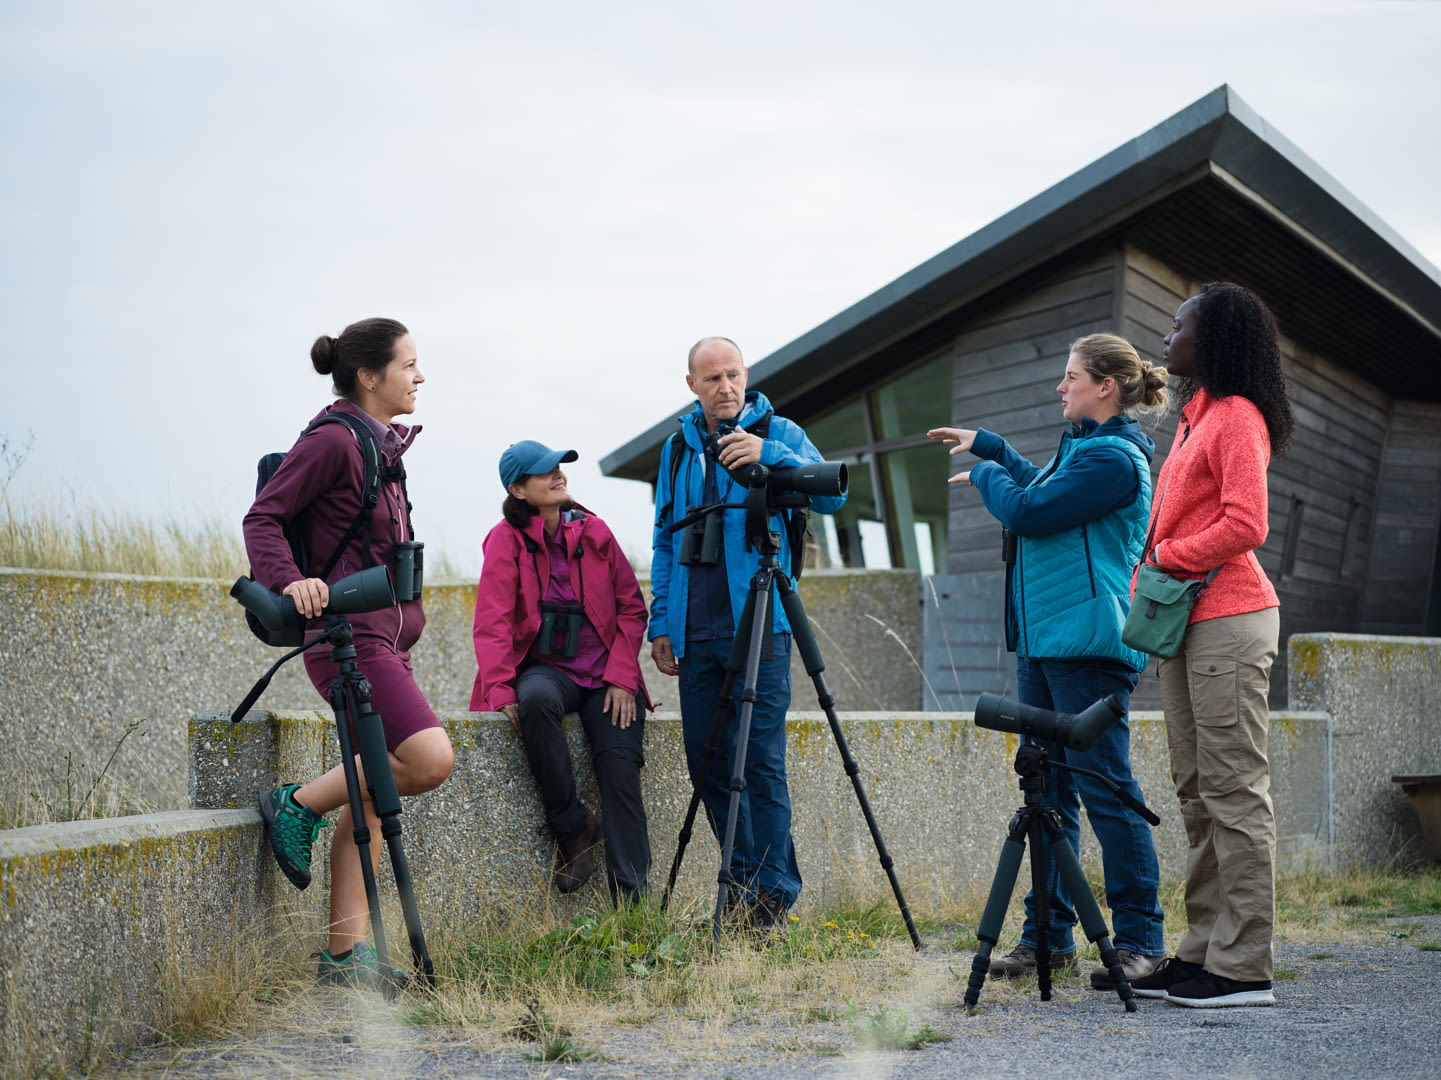 Birders at the lake with different SWAROVSKI OPTIK spotting scopes